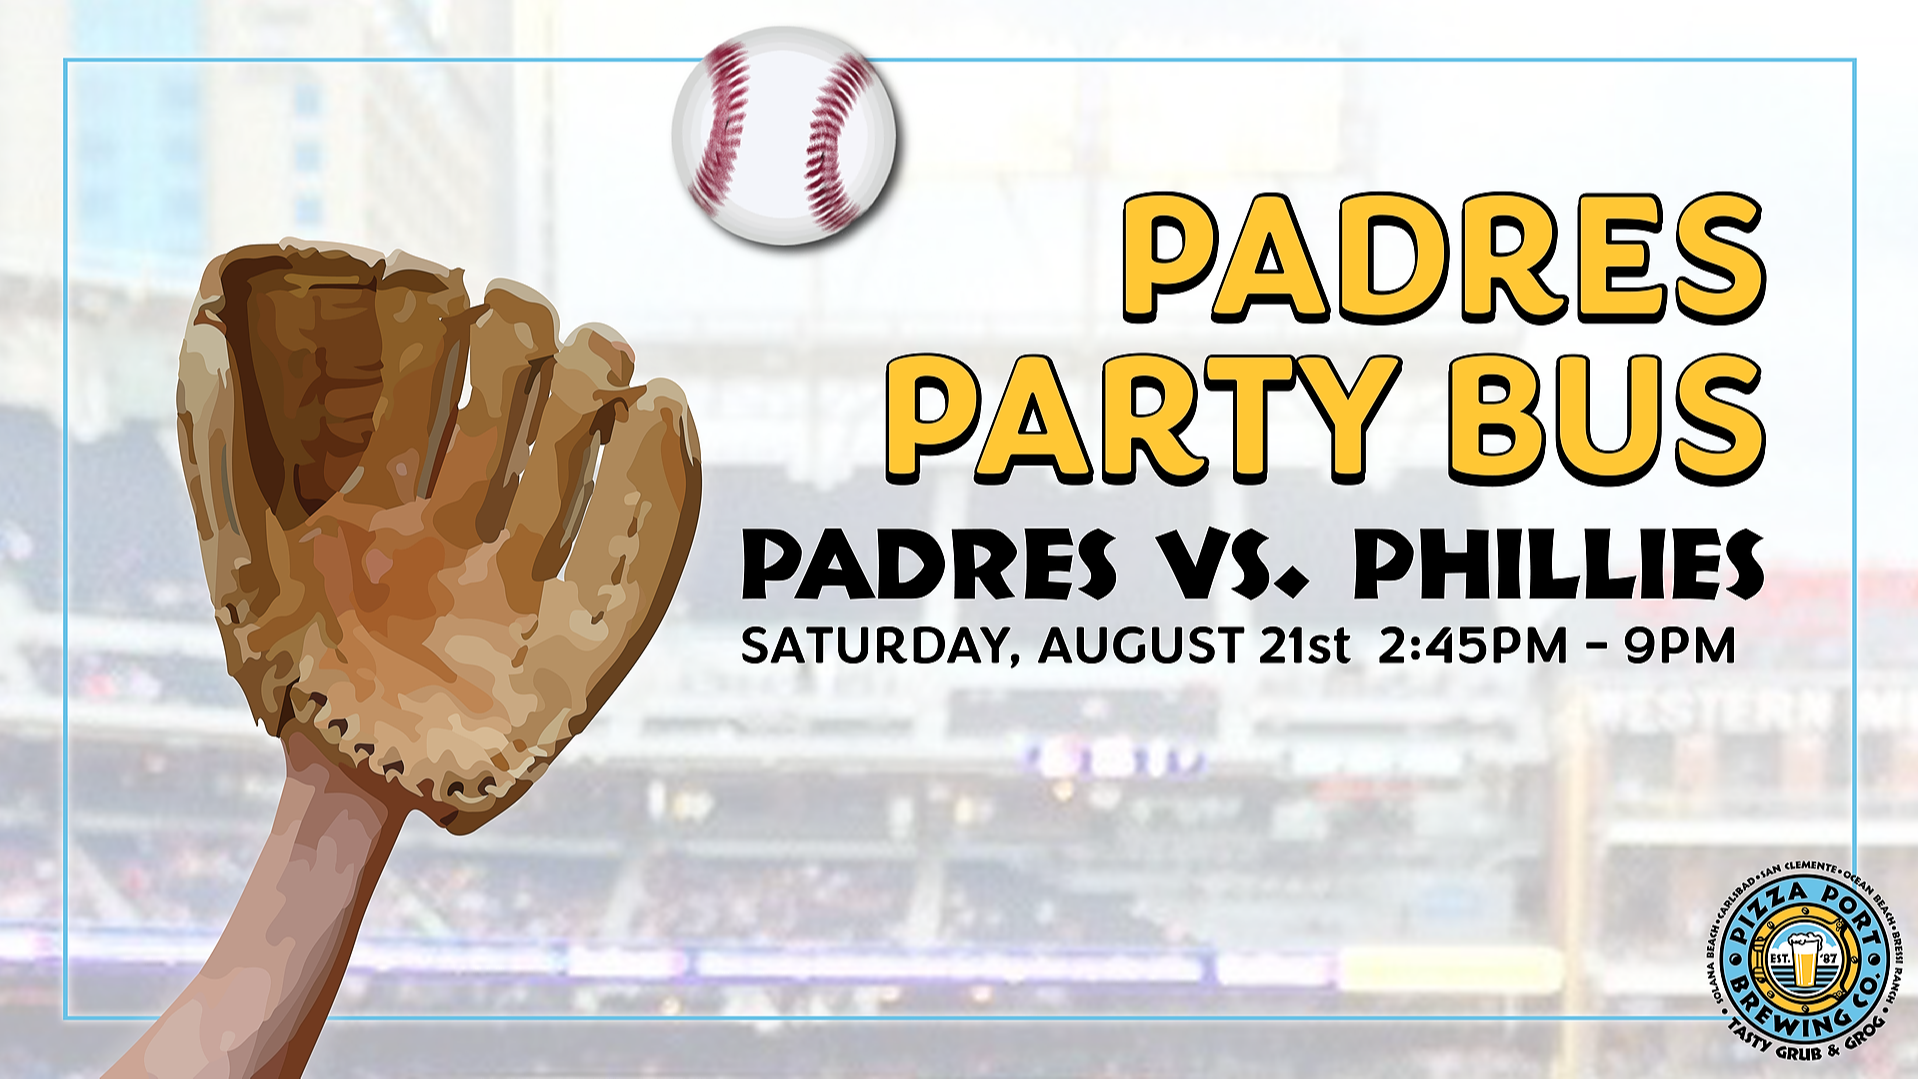 Pizza Port Padres Party Bus Phillies Vs. Padres